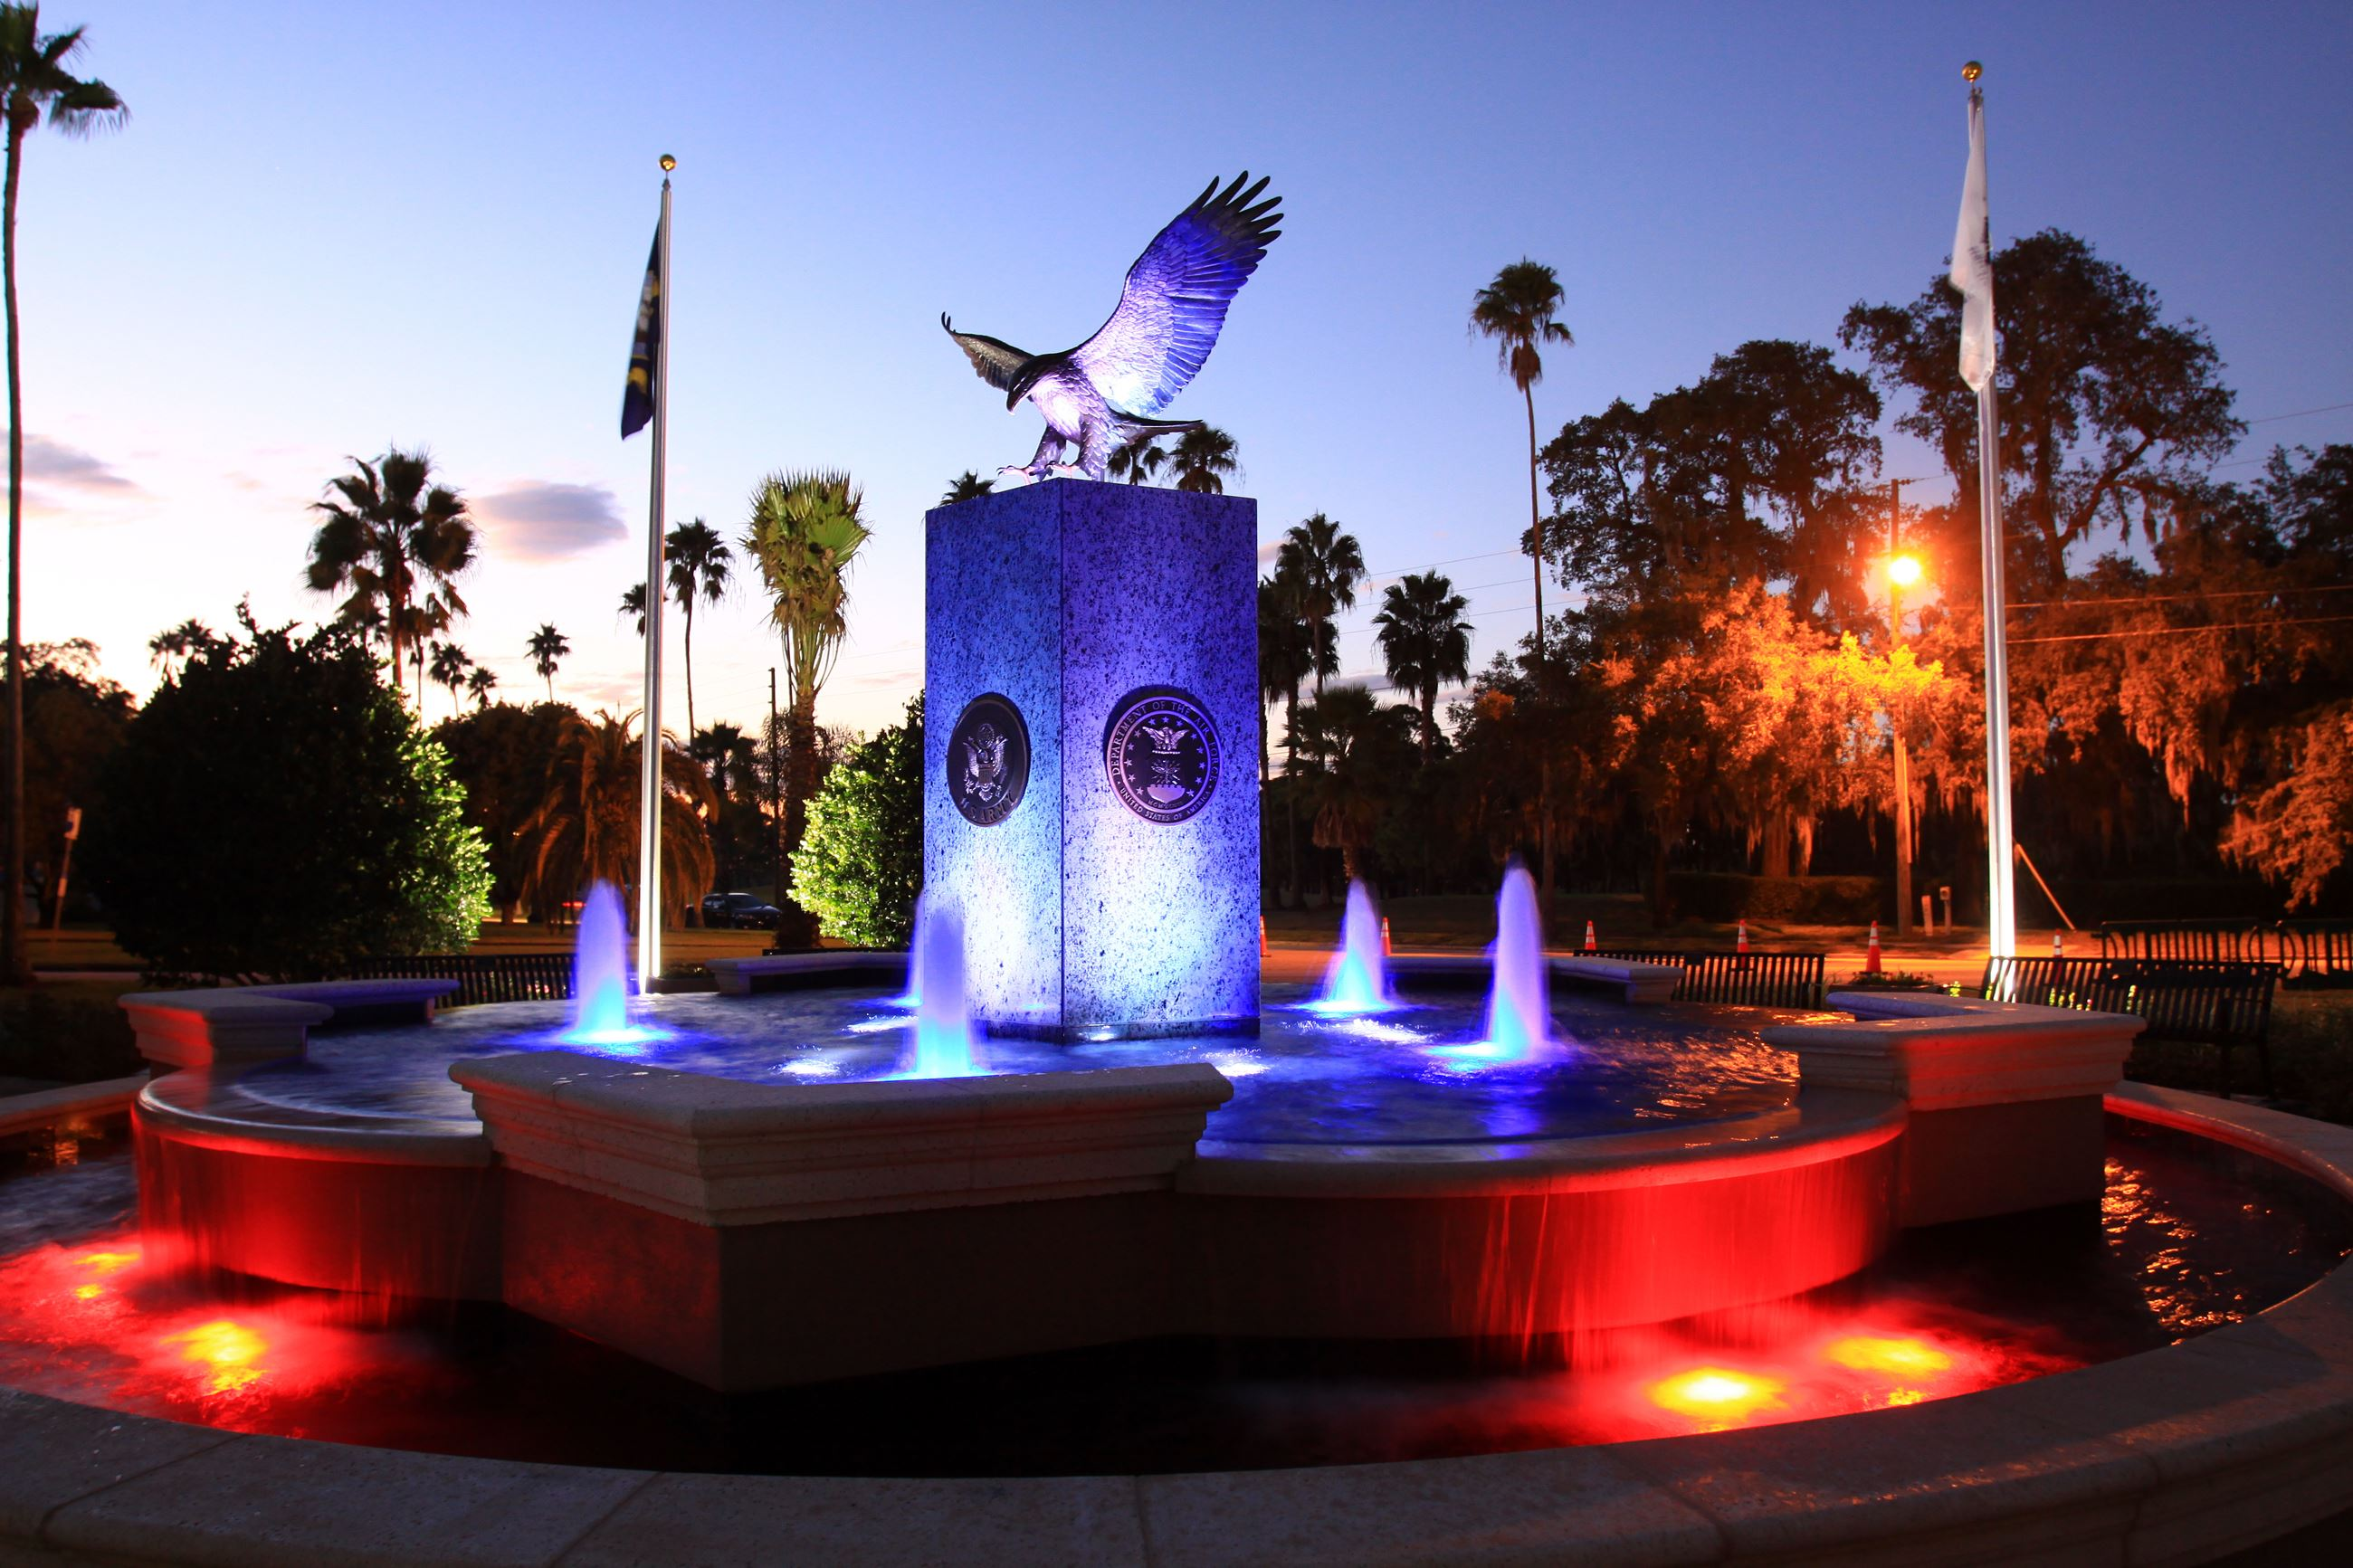 The fountain at Hunter Memorial Park at night with red, white, and blue colors